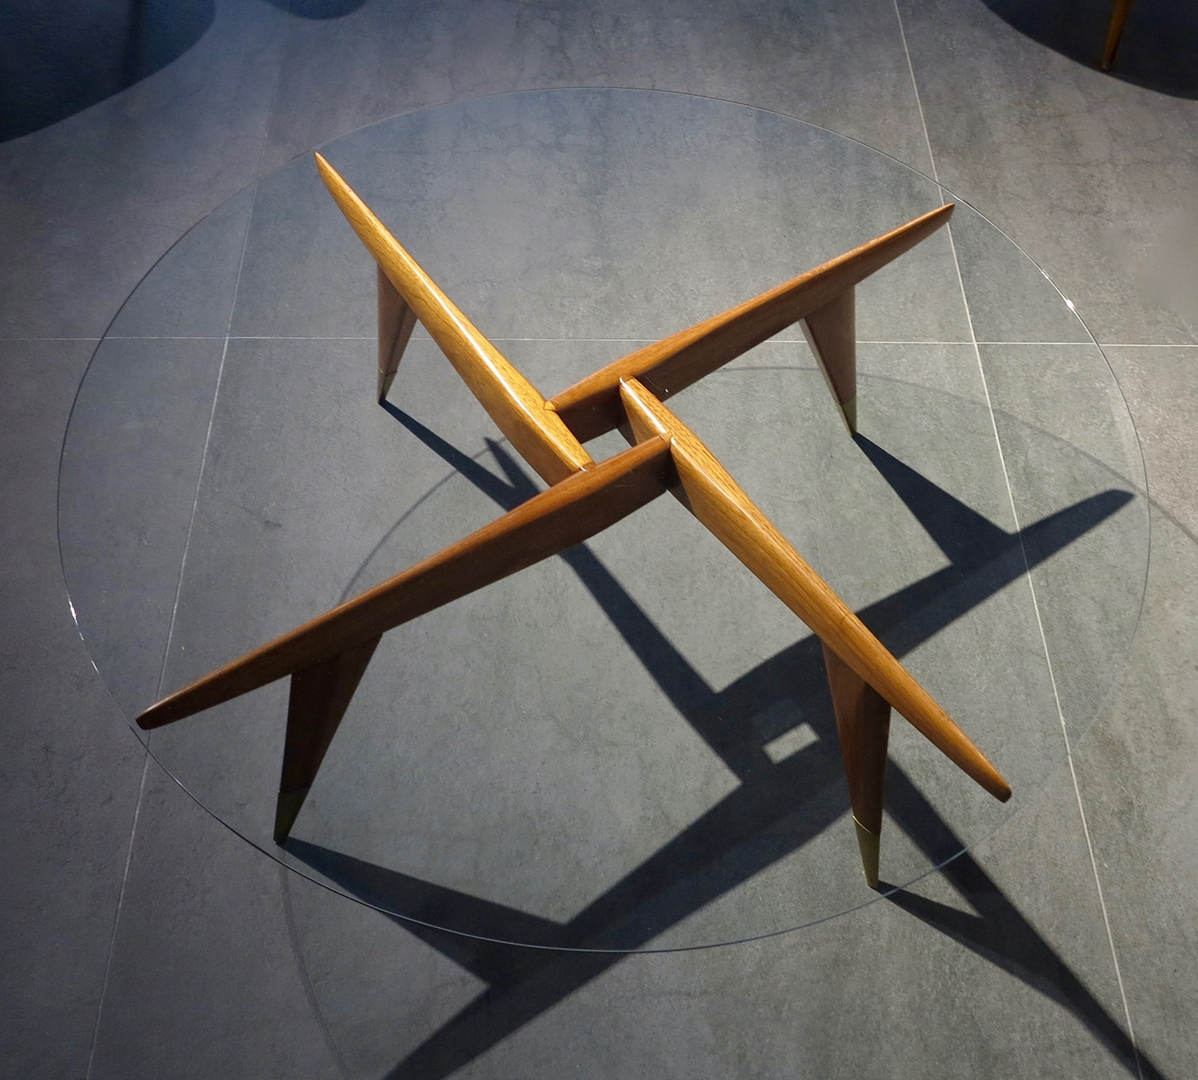 Coffee table by Gio Ponti 1950 at Galleria Rossella Colombari courtesy of Galleria Rossella Colombari (Copy)